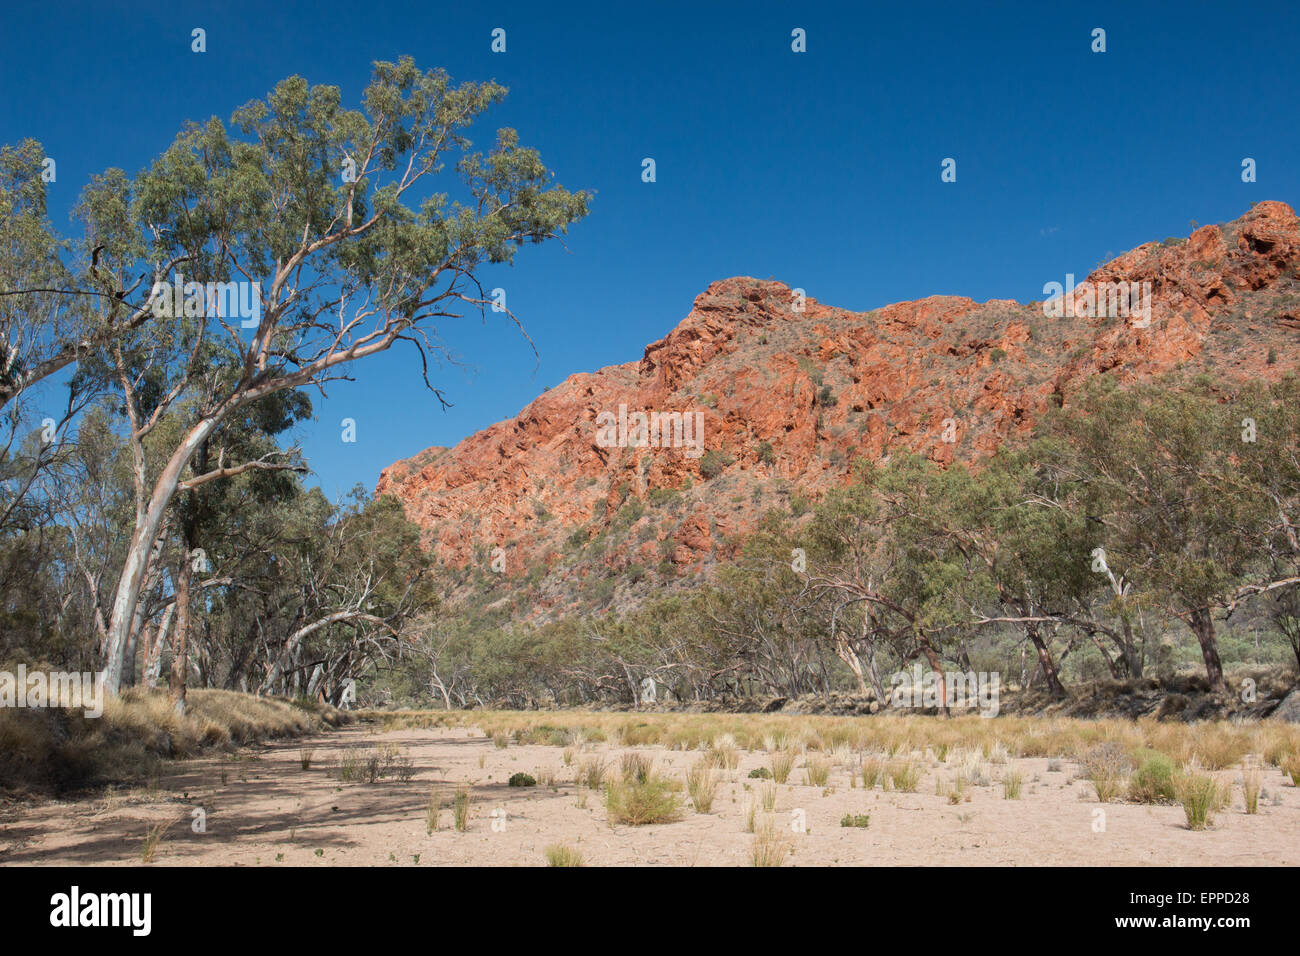 the dry riverbed of the Trephina River in Trephina Gorge during a drought, MacDonnell Ranges, Australia - Stock Image